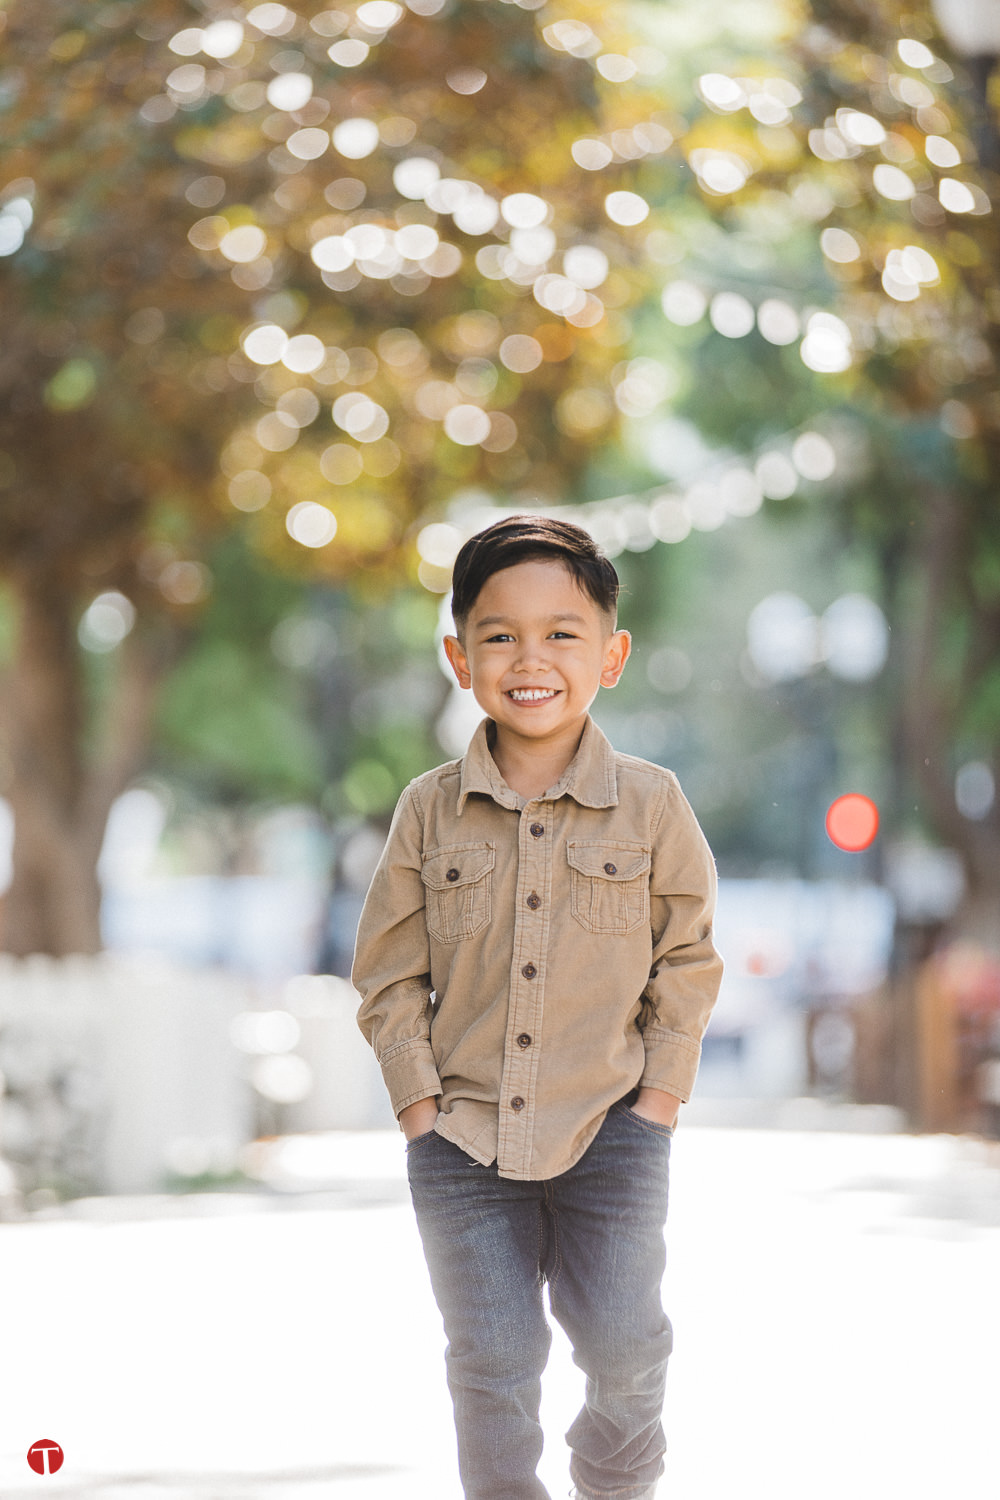 taylor-family-photoshoot-downtown-san-jose-16.jpg